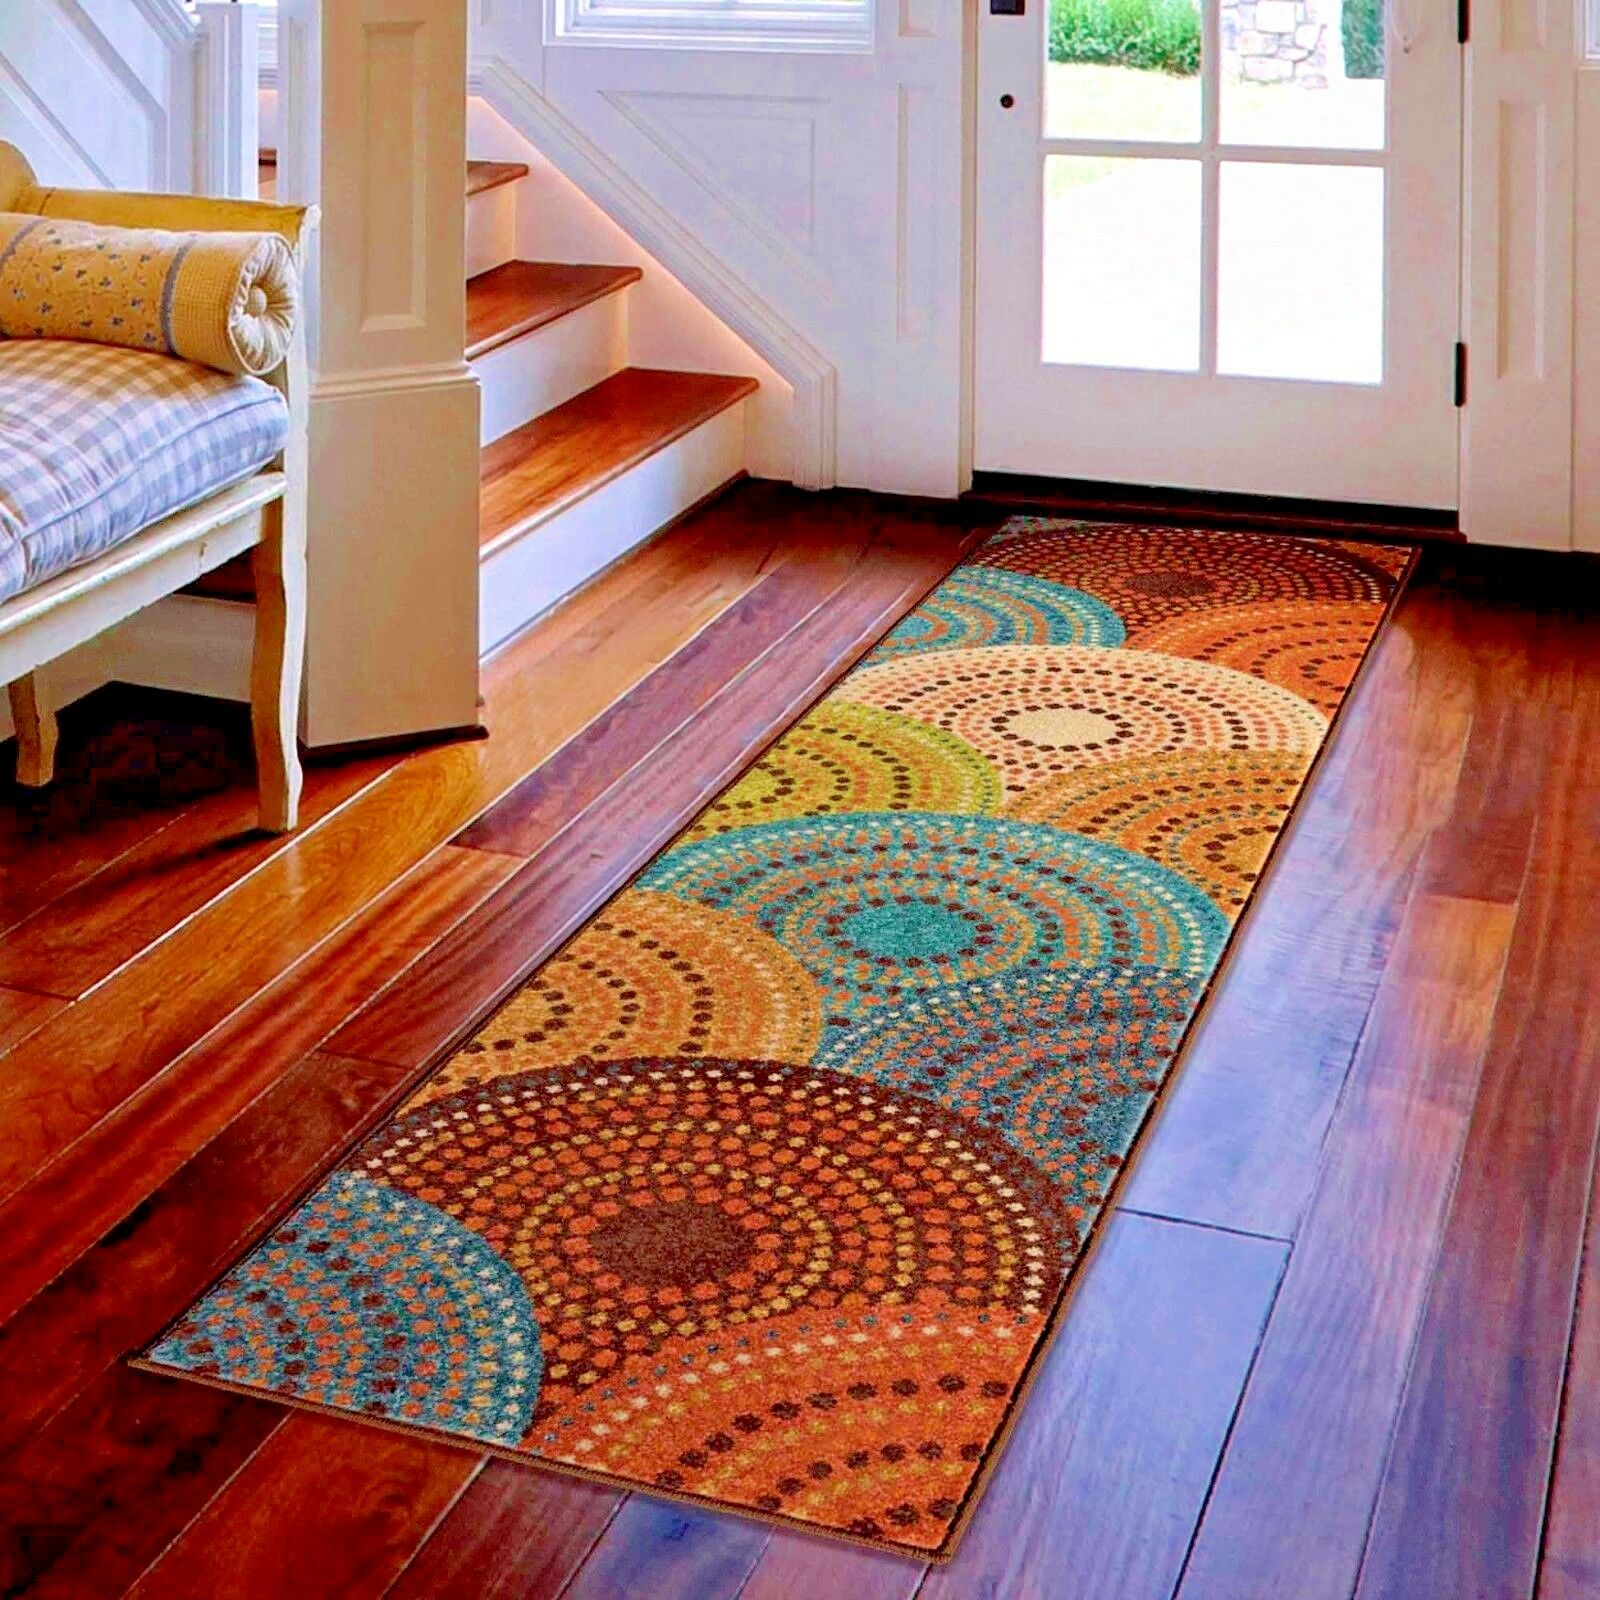 RUNNER RUGS CARPET RUNNERS AREA RUG RUNNERS HALLWAY COOL COL